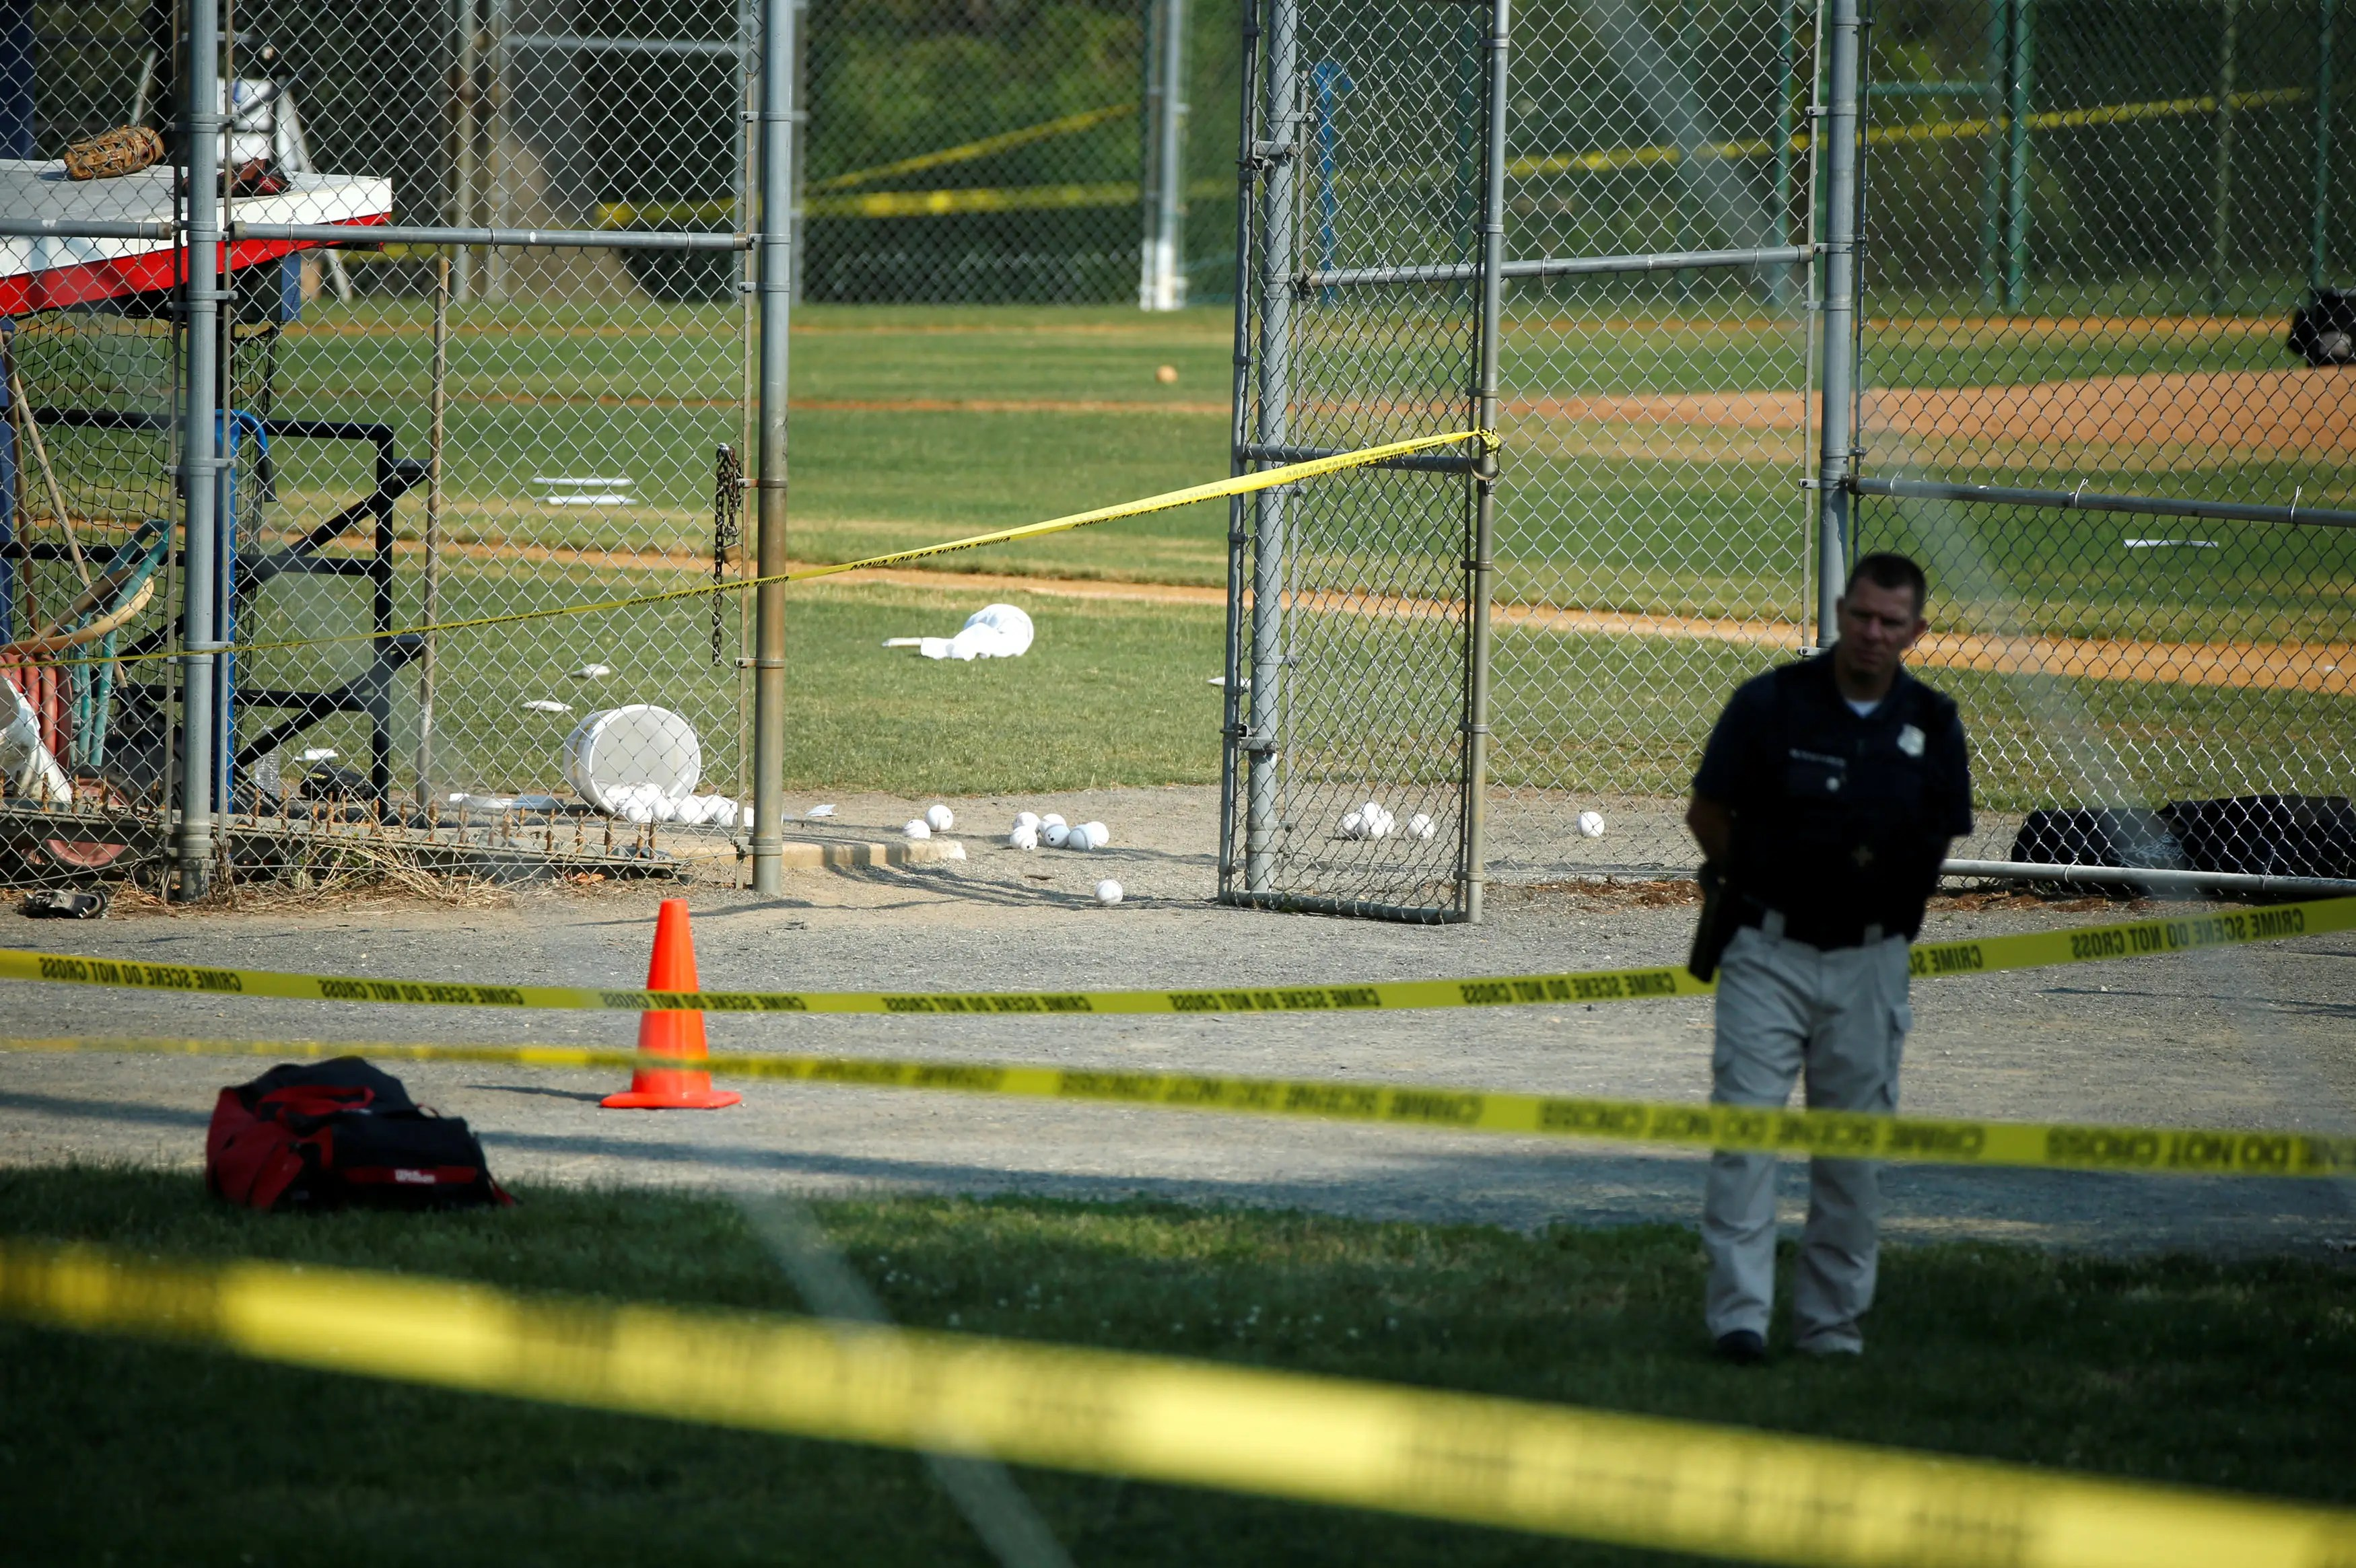 congress baseball shooting